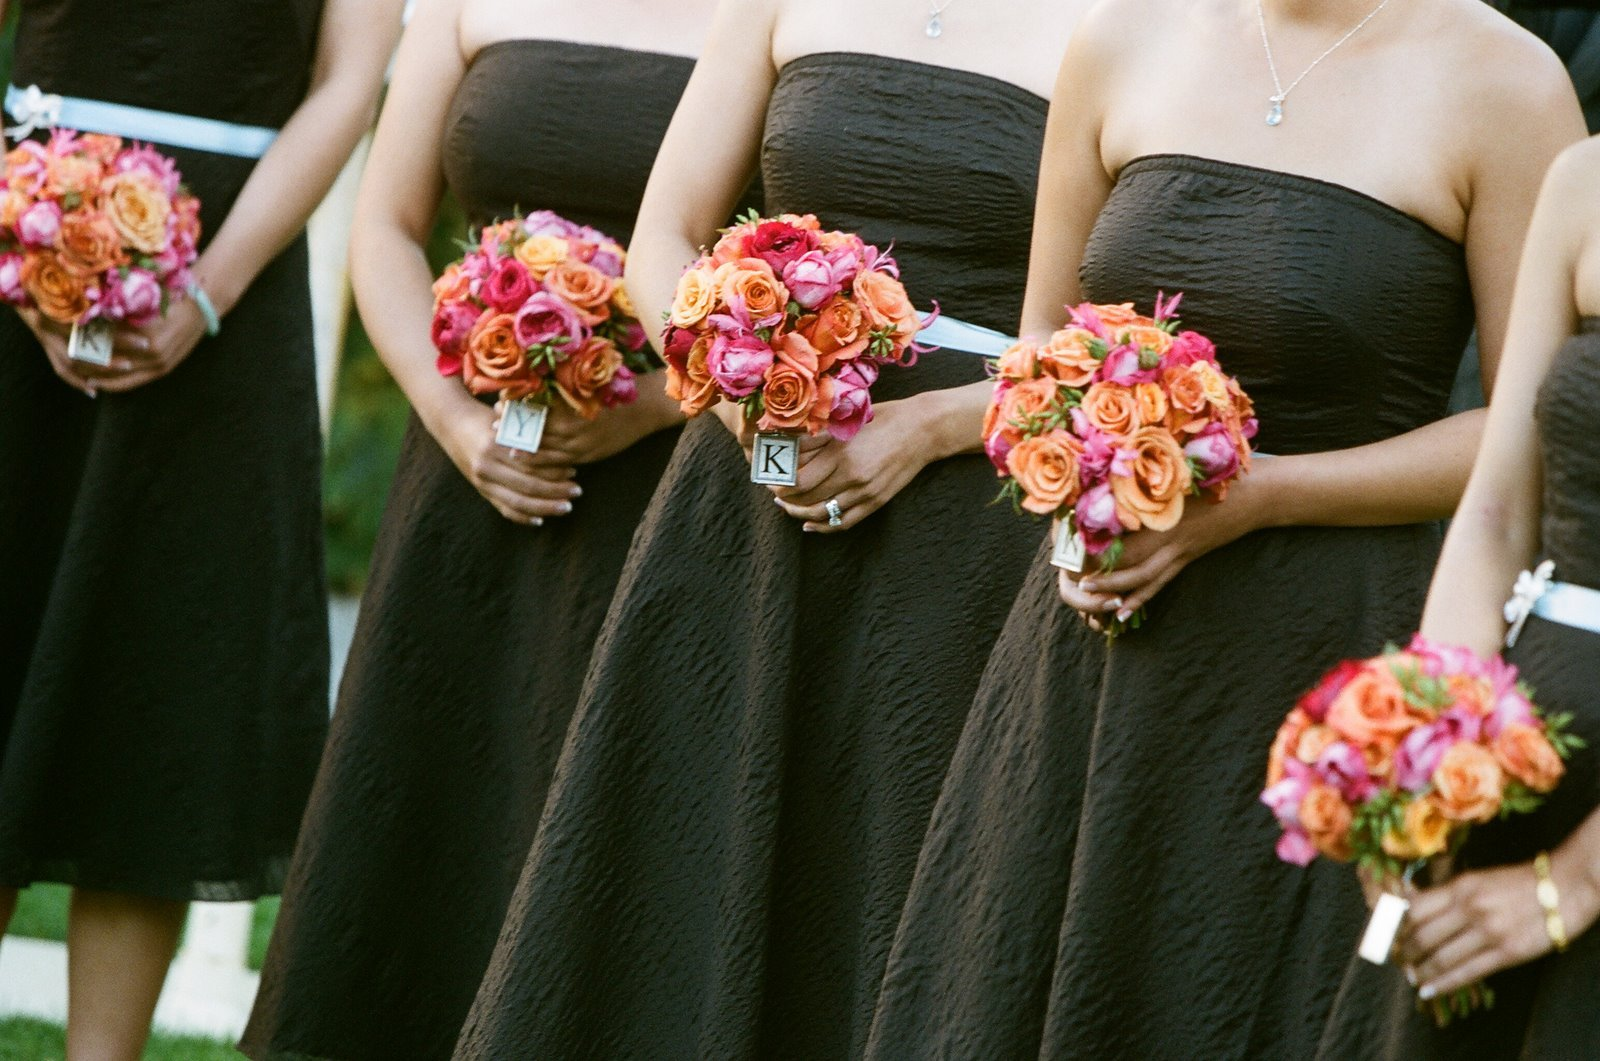 Flowers & Decor, Fashion, orange, pink, blue, brown, Bridesmaid Bouquets, Flowers, Bridesmaid, Dresses, Flower Wedding Dresses